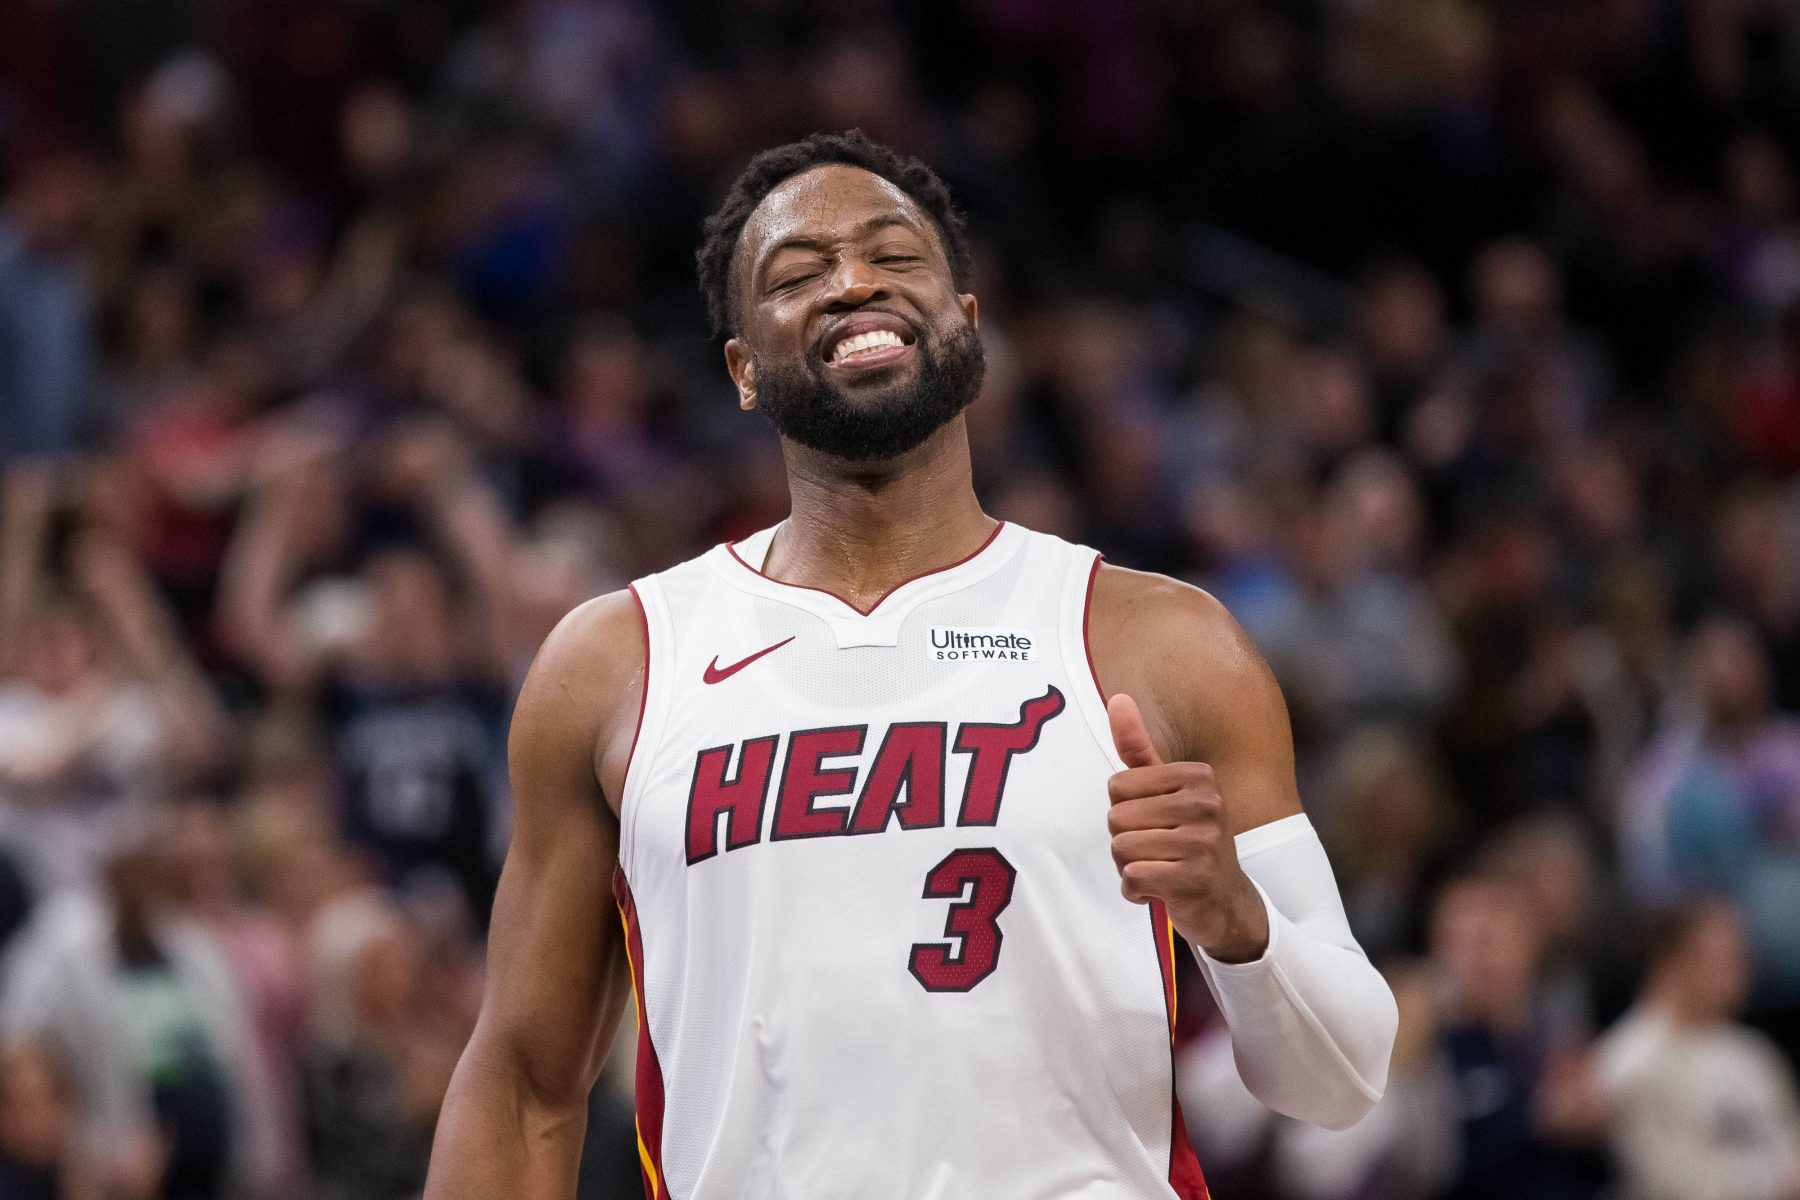 reputable site 5de06 8e412 NBA Store Releases Dwyane Wade's Jersey Ranking for 2018-19 ...